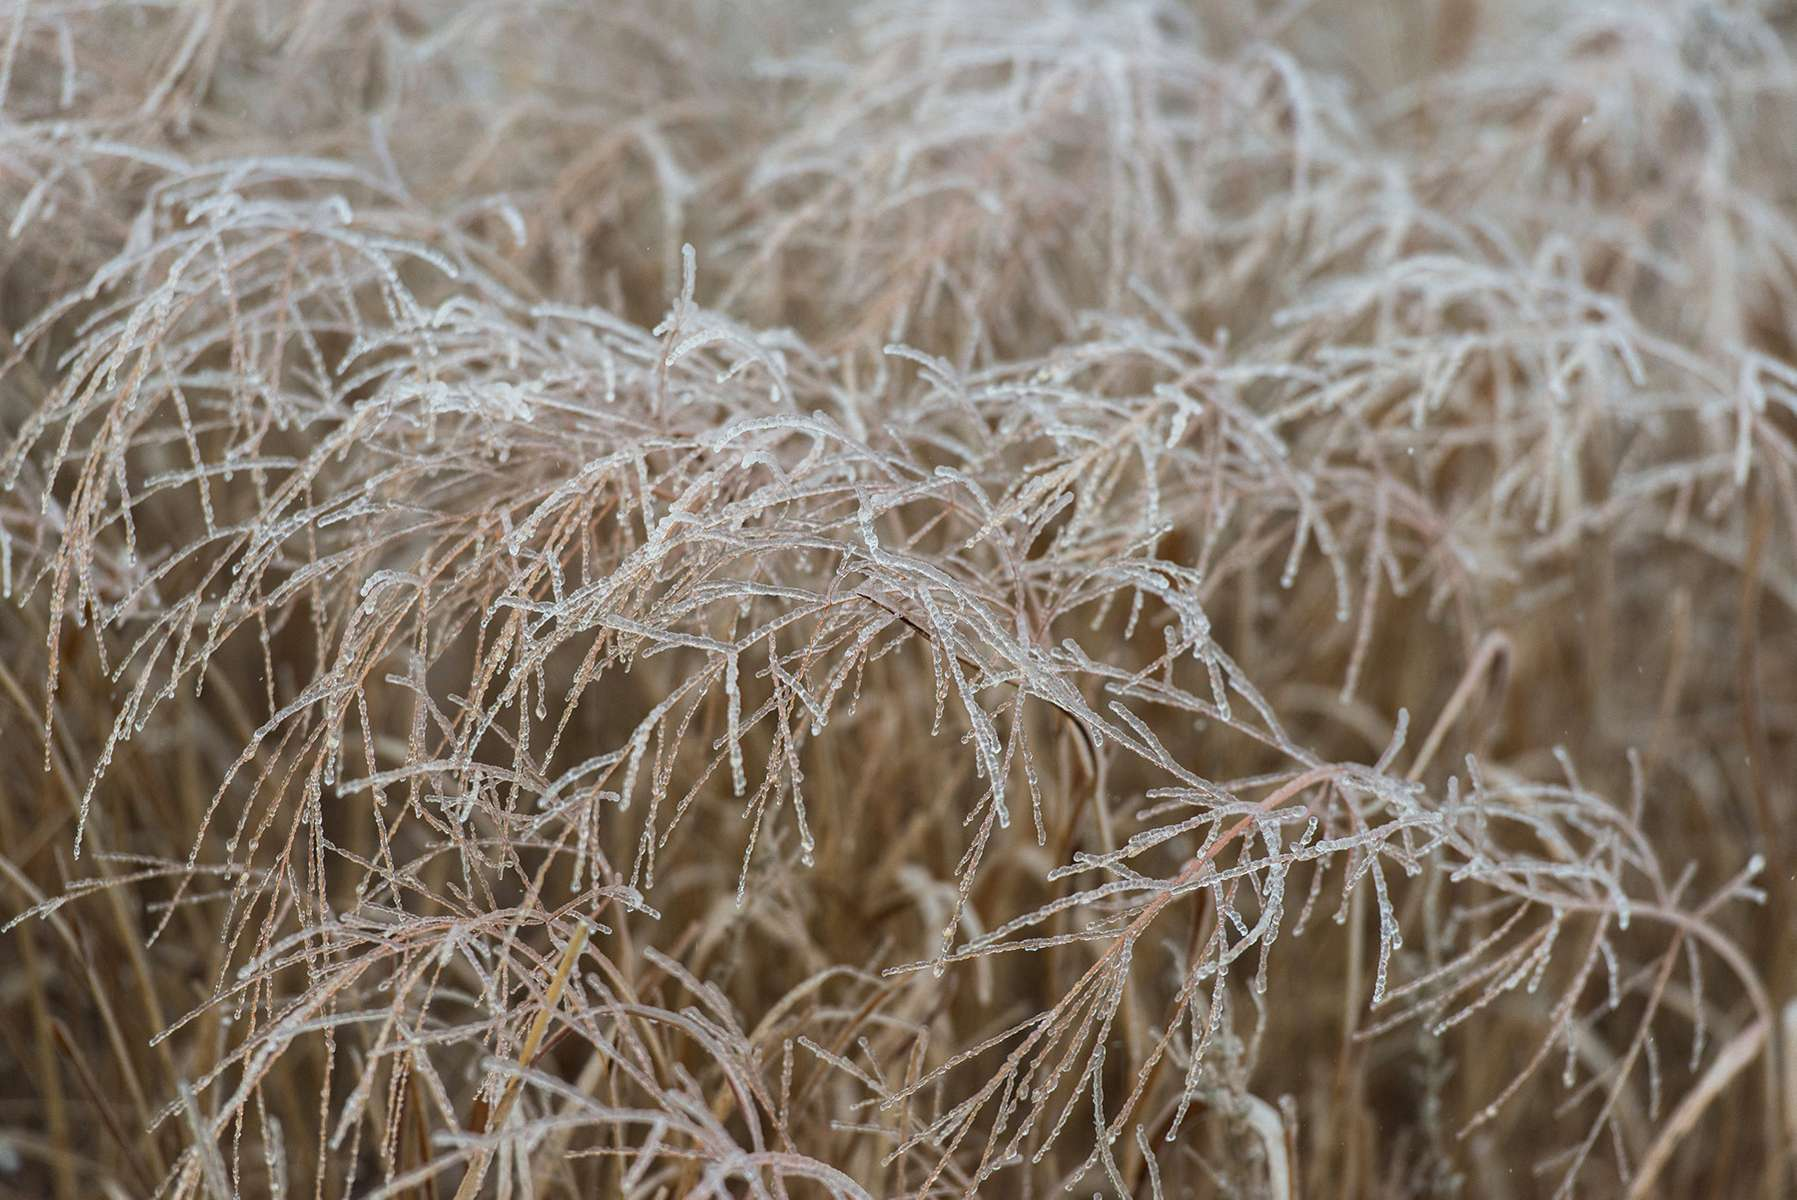 Frozen Tallgrass; If you're from the midwest, you know how an ice storm feels. It's hard to believe the bison can weather it all.